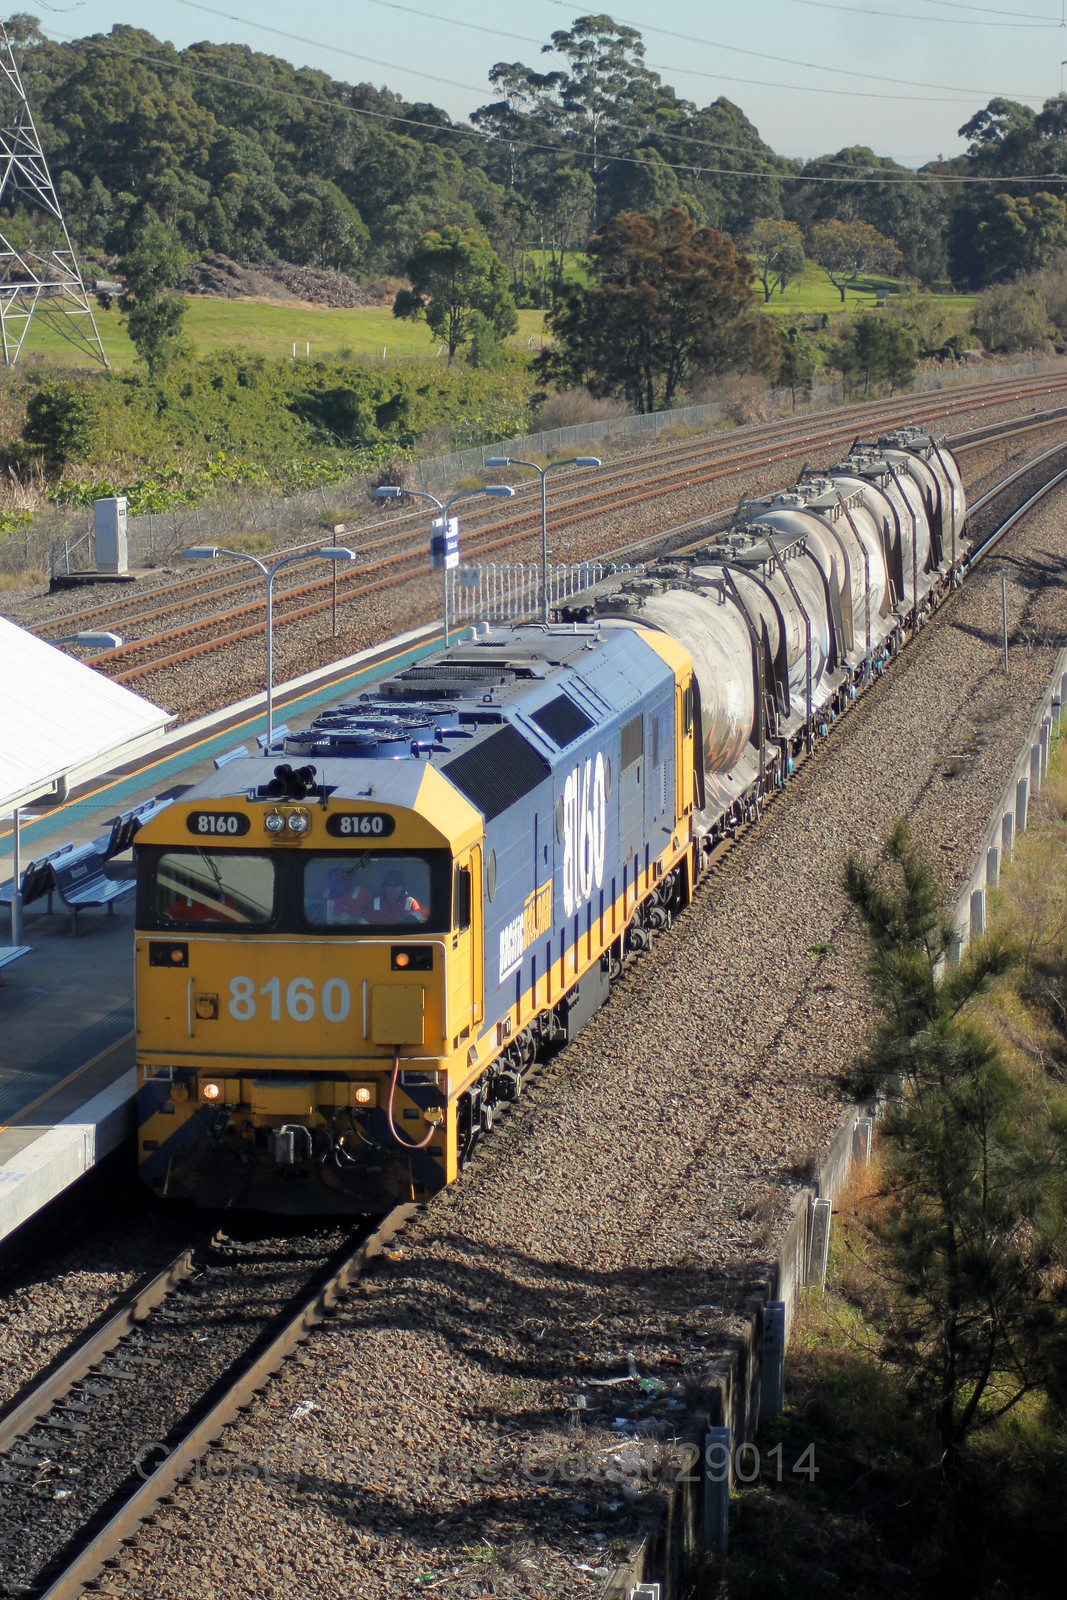 Kooragang Cement Trip Train by Scott S